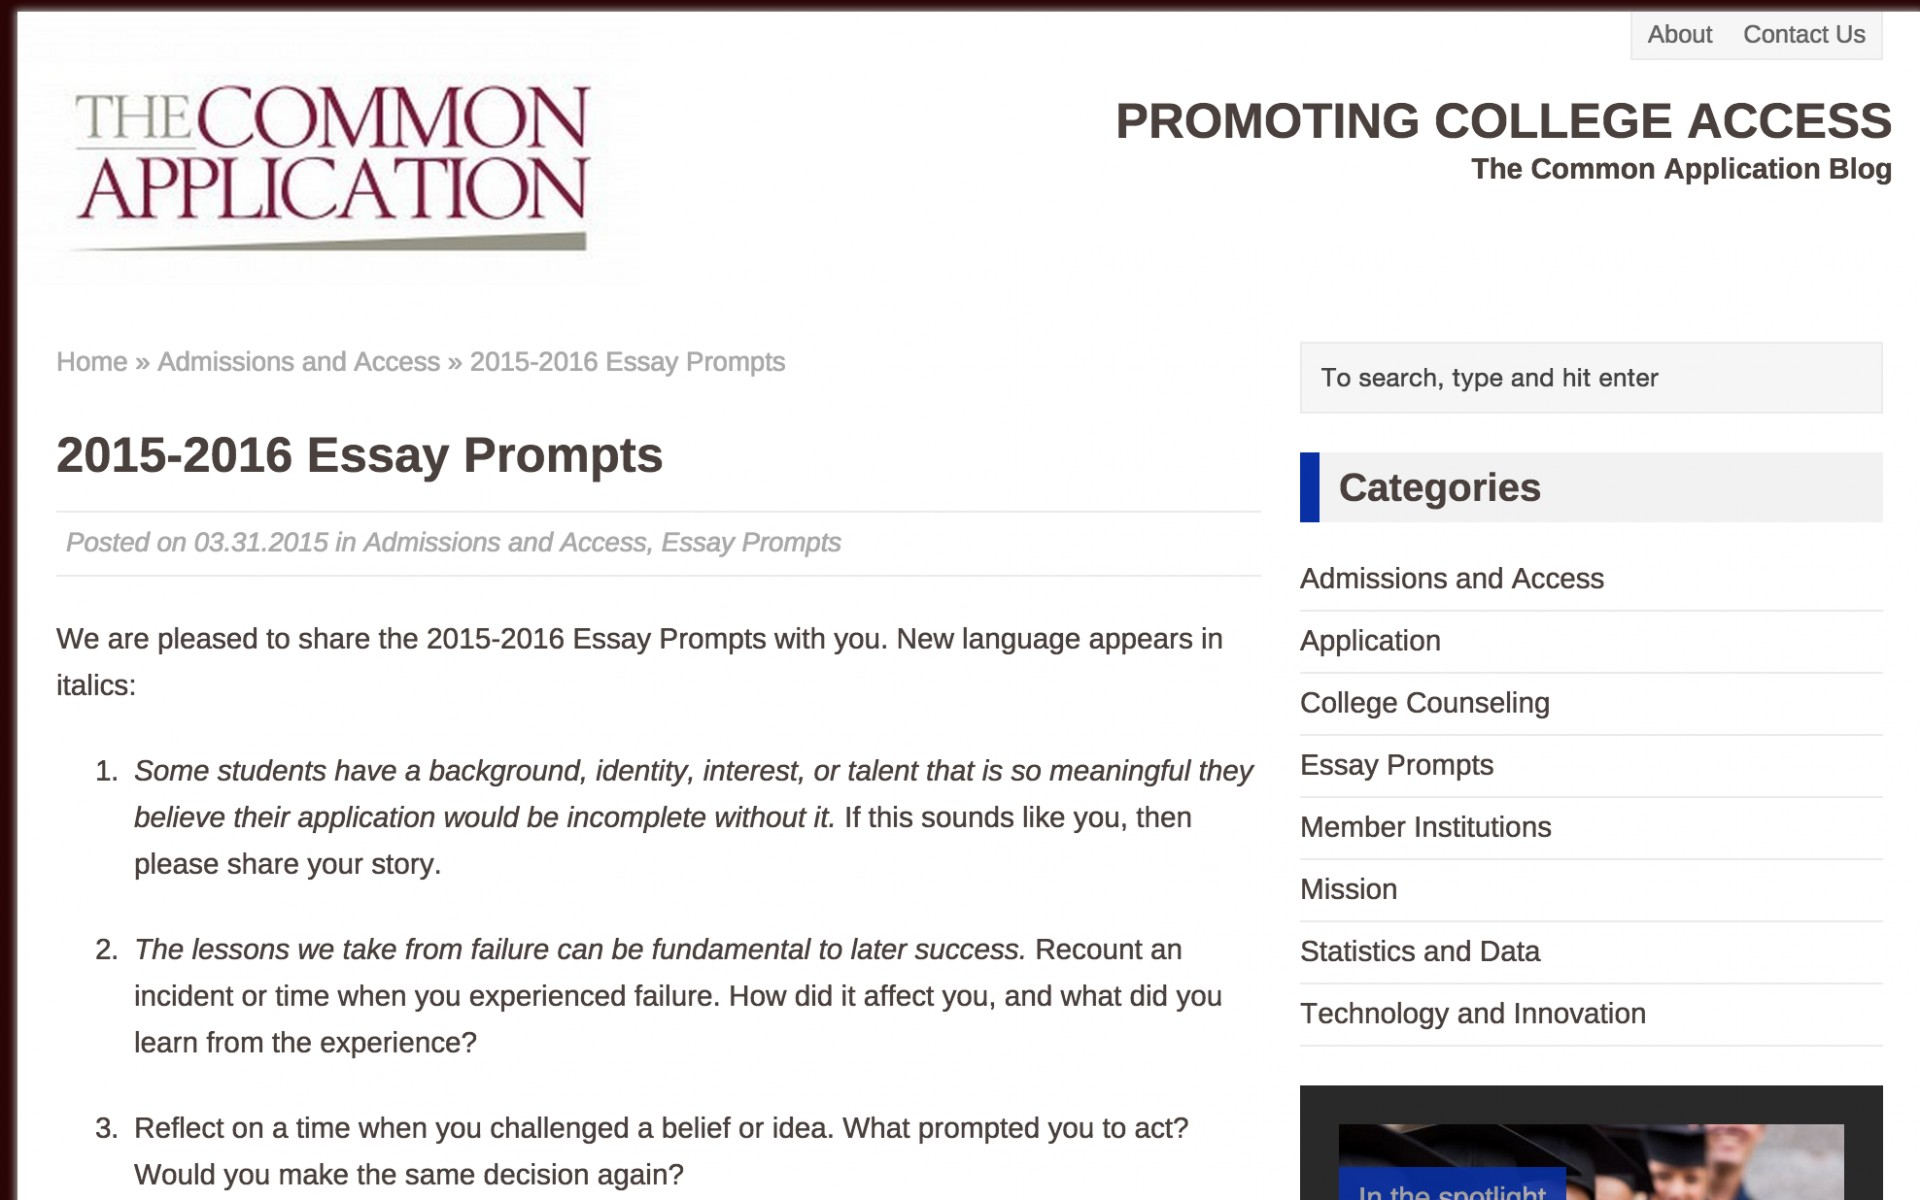 007 Essay Example Common Application Screen Shot At Fearsome App 5 Tips Examples 2017 Word Limit 2018-19 1920